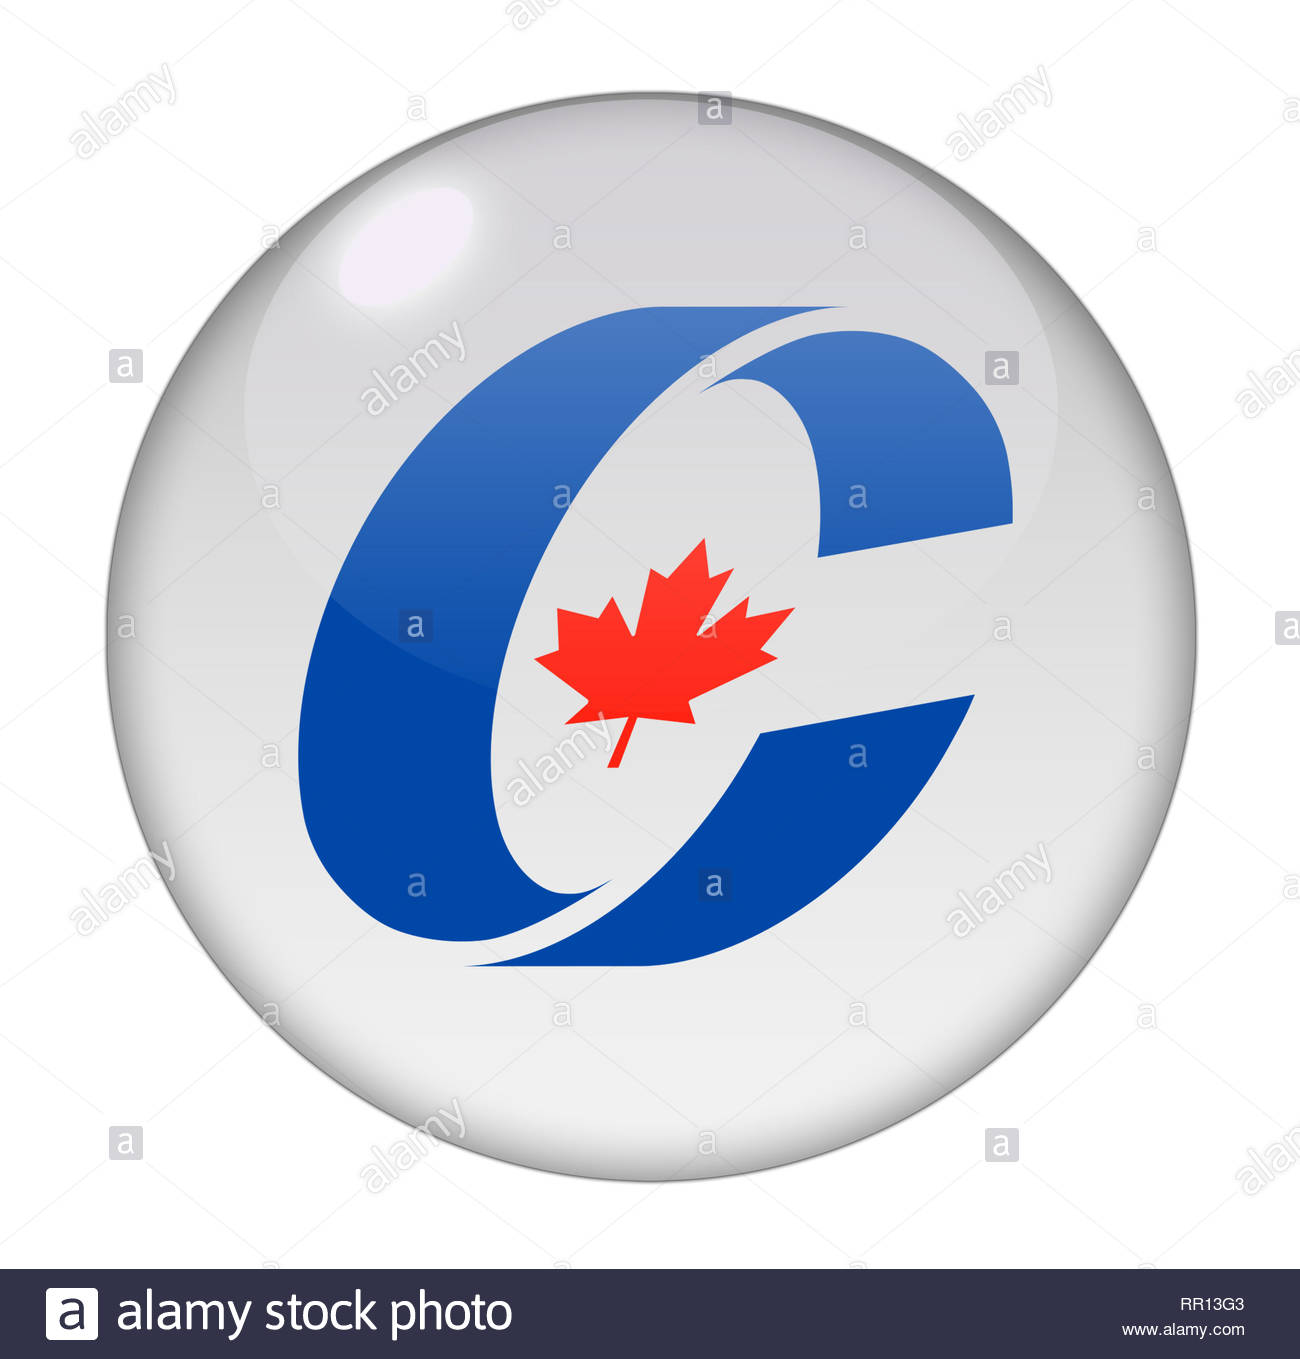 Conservative Party of Canada logo - Stock Image